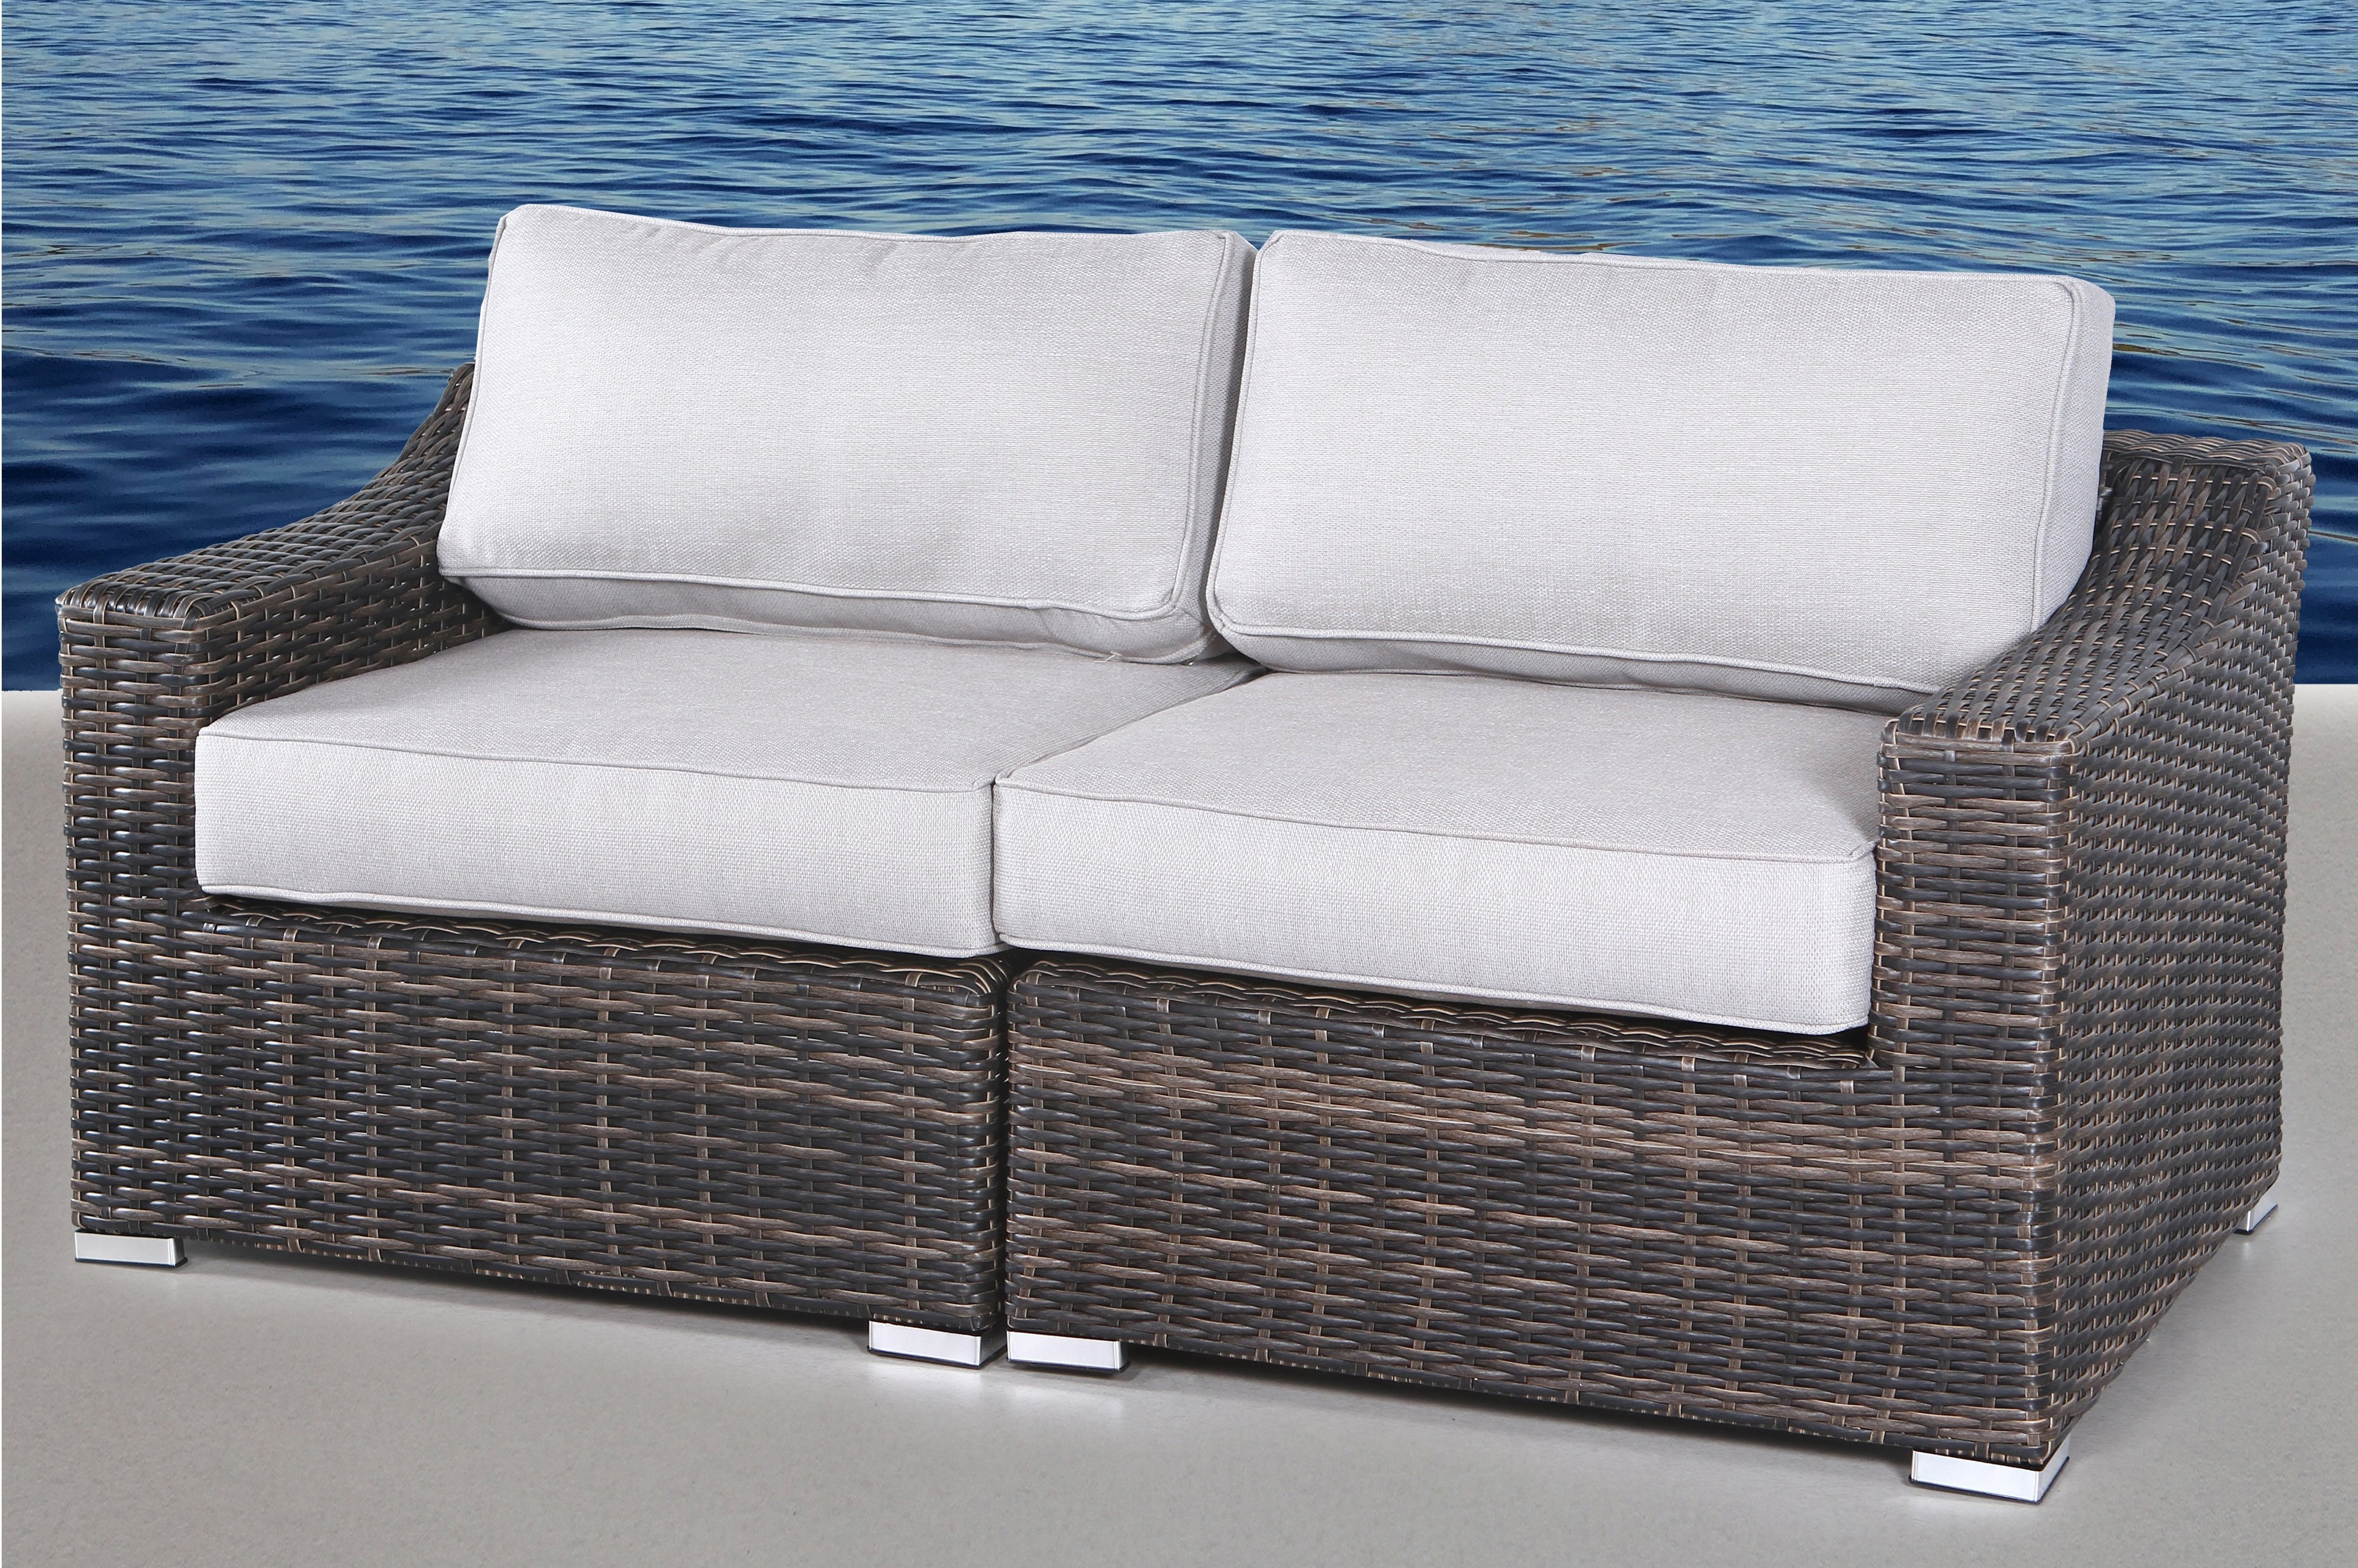 Huddleson Loveseat With Cushion With Regard To Widely Used Loggins Loveseats With Cushions (View 5 of 20)